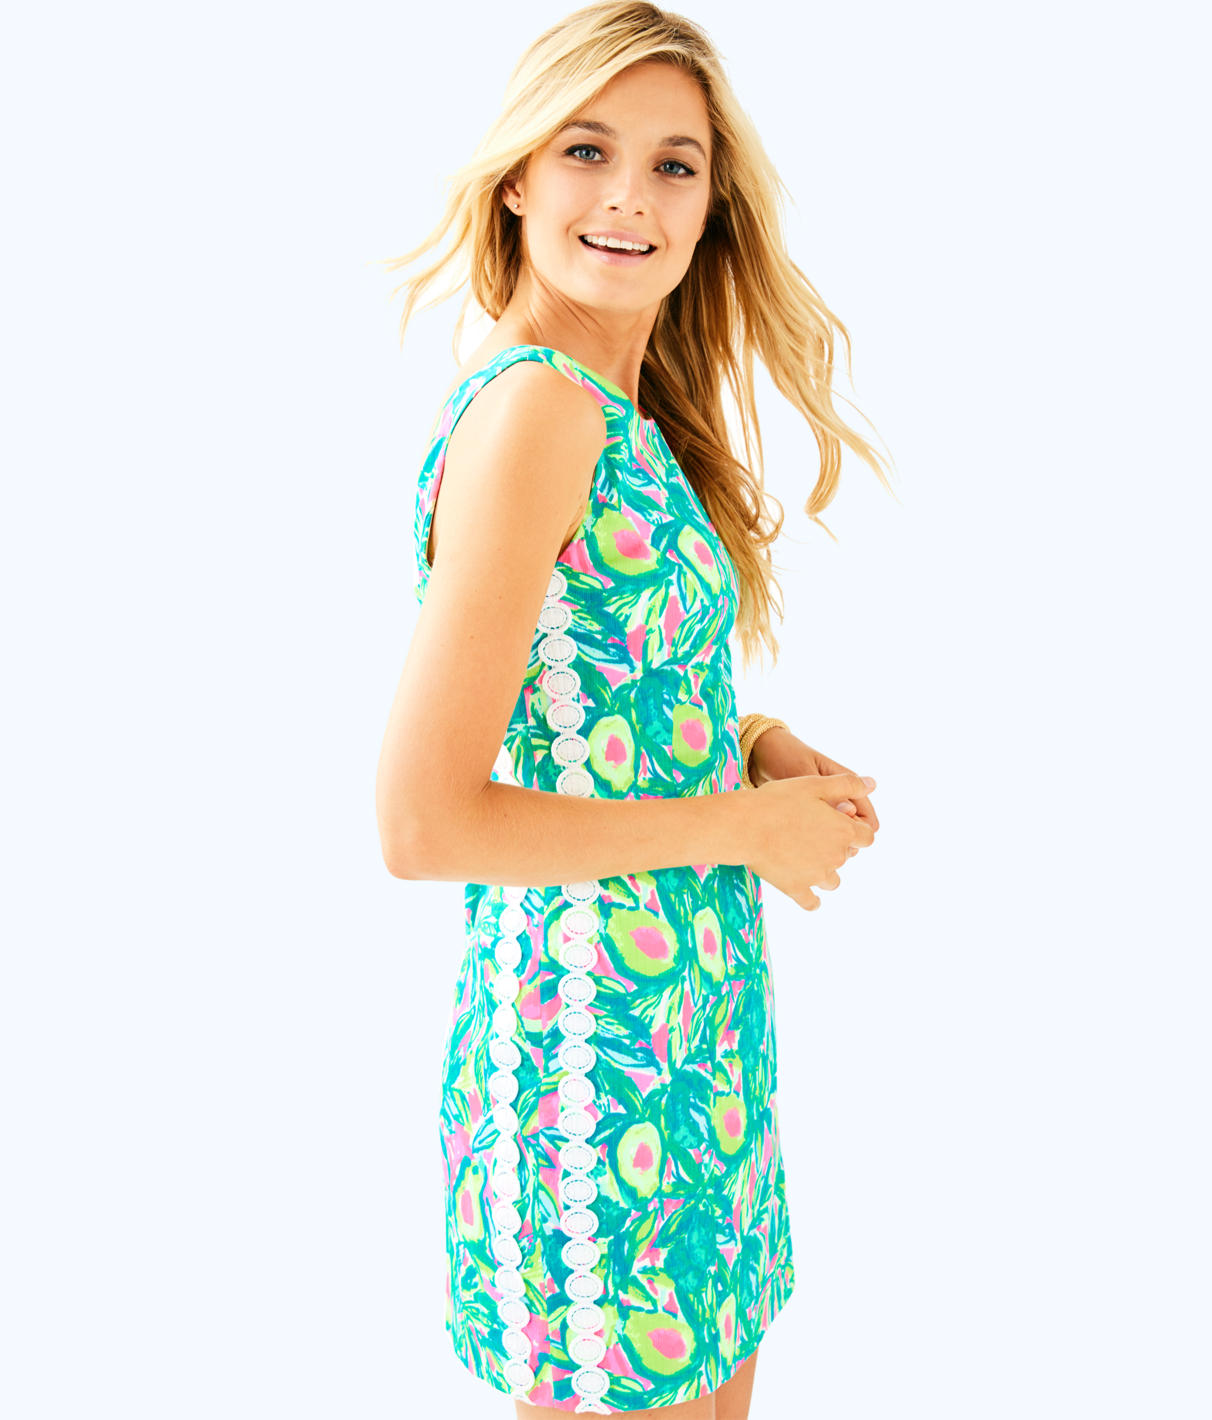 Lilly Pulitzer Lilly Pulitzer Womens Mila Shift Dress